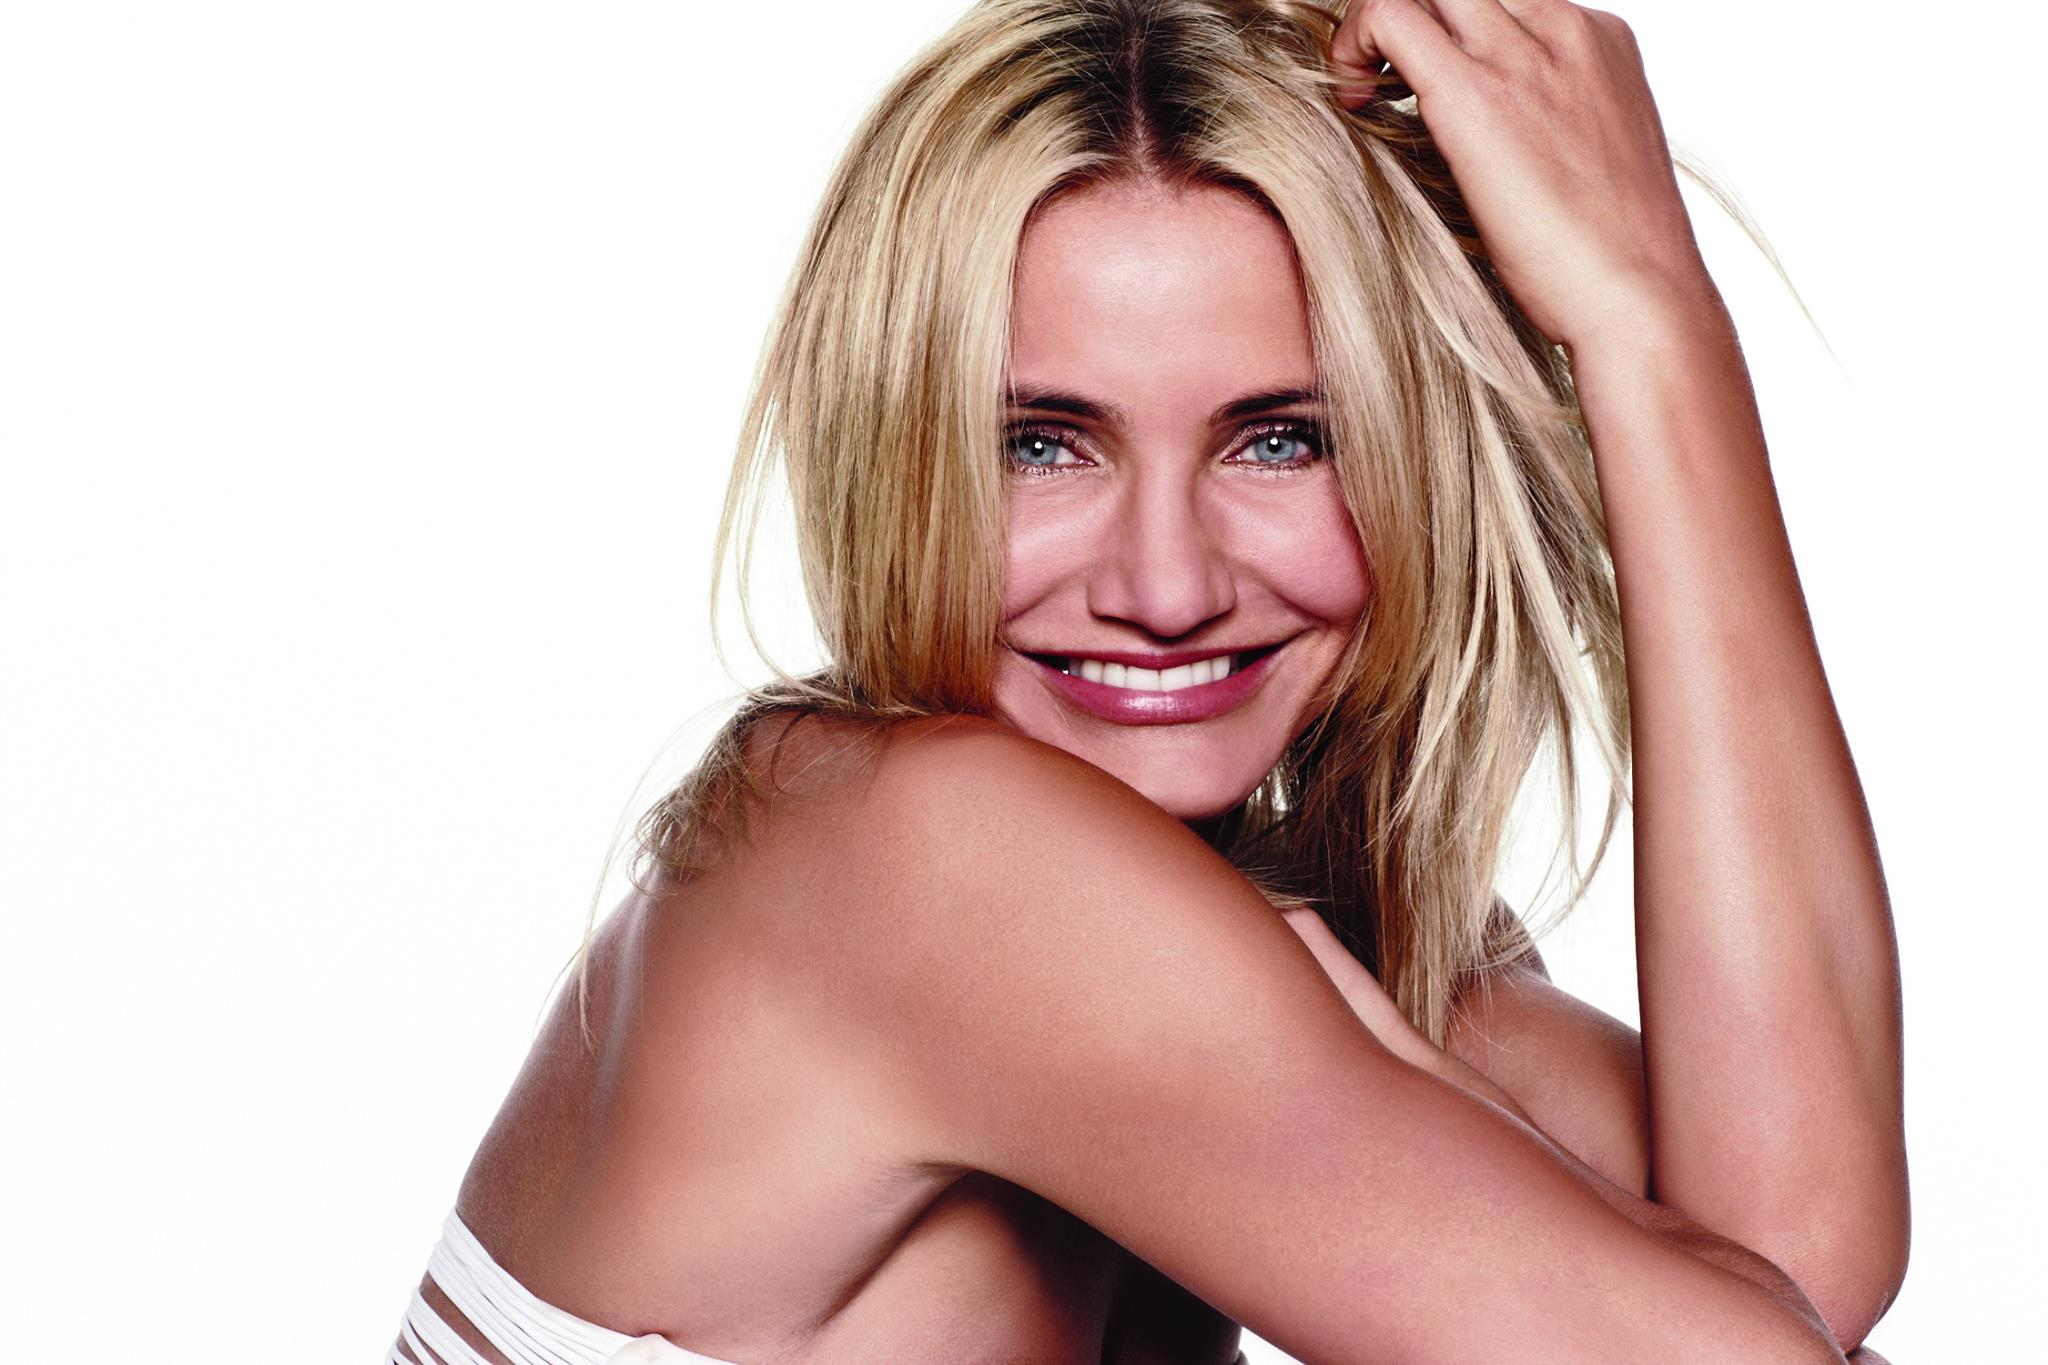 Cameron Diaz Arm Exercises for Women